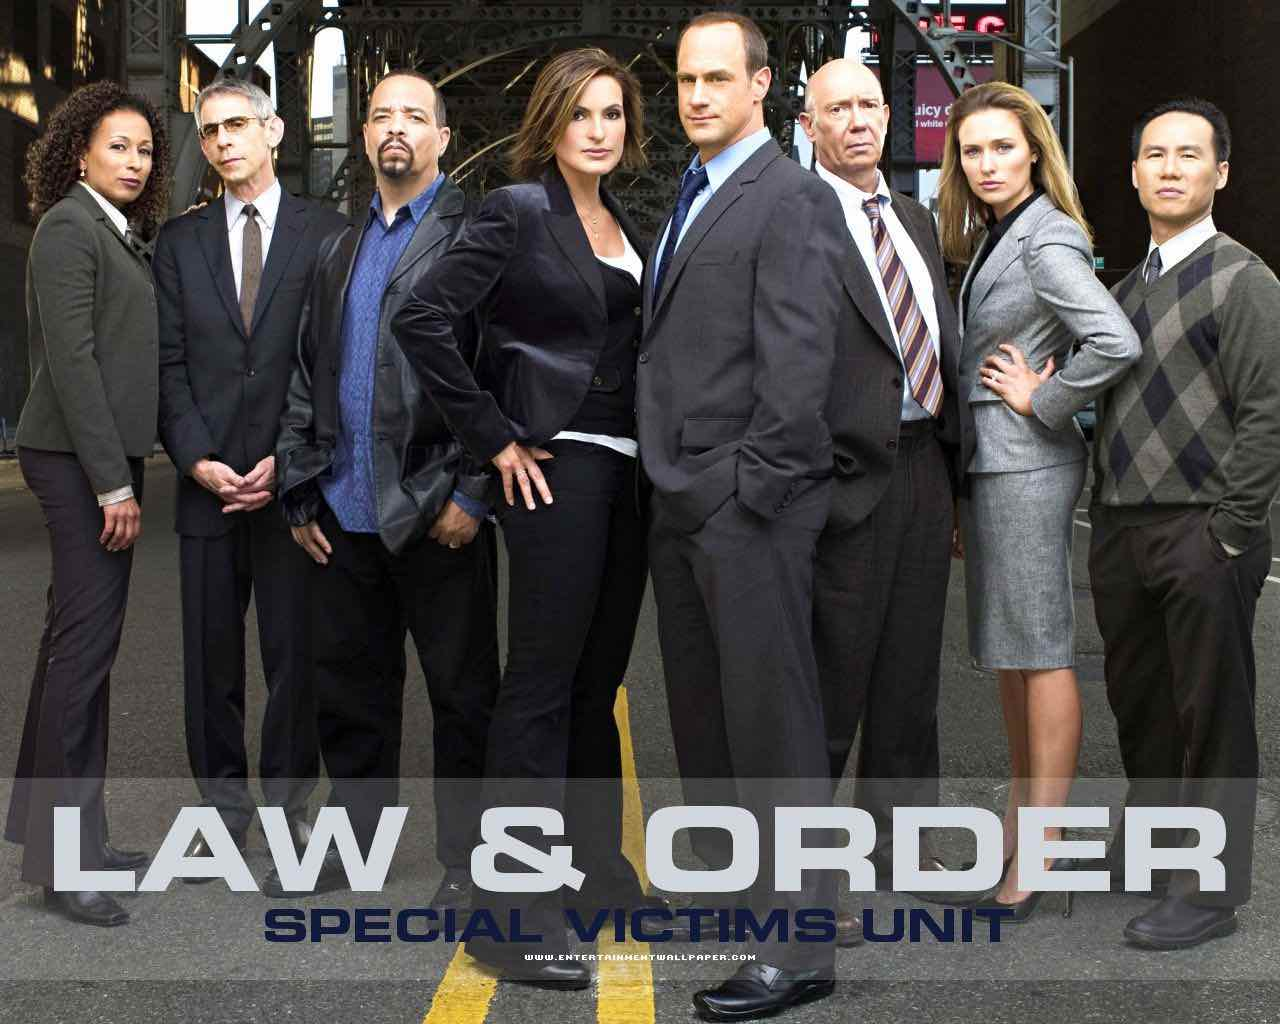 """Where To Watch All 22 Seasons Of """"Law & Order: Special Victims Unit"""" Online?"""